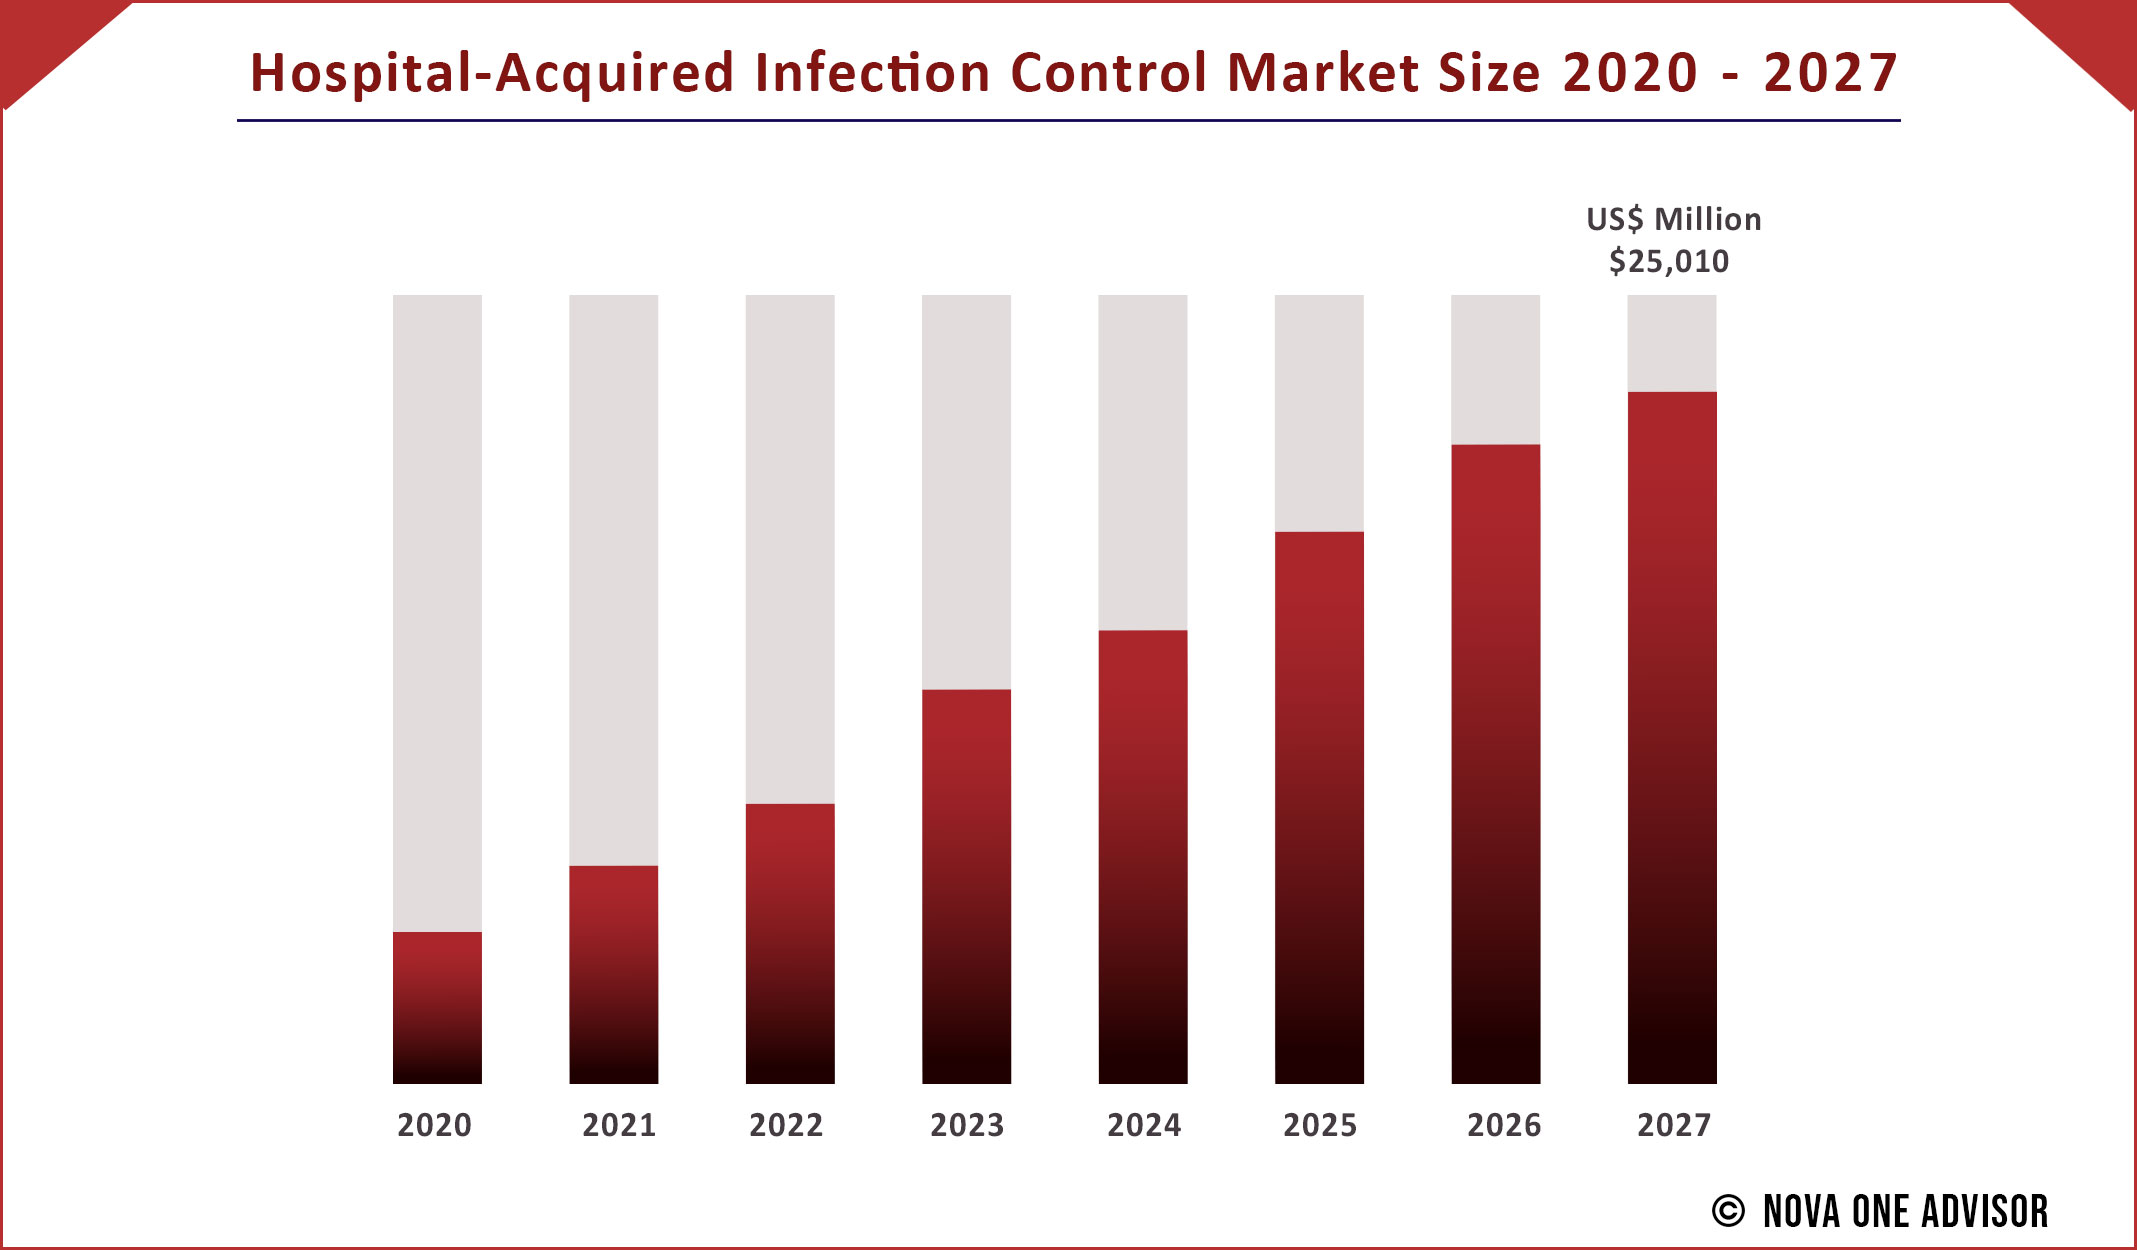 Hospital Acquired Infection Control Market Size 2020 to 2027